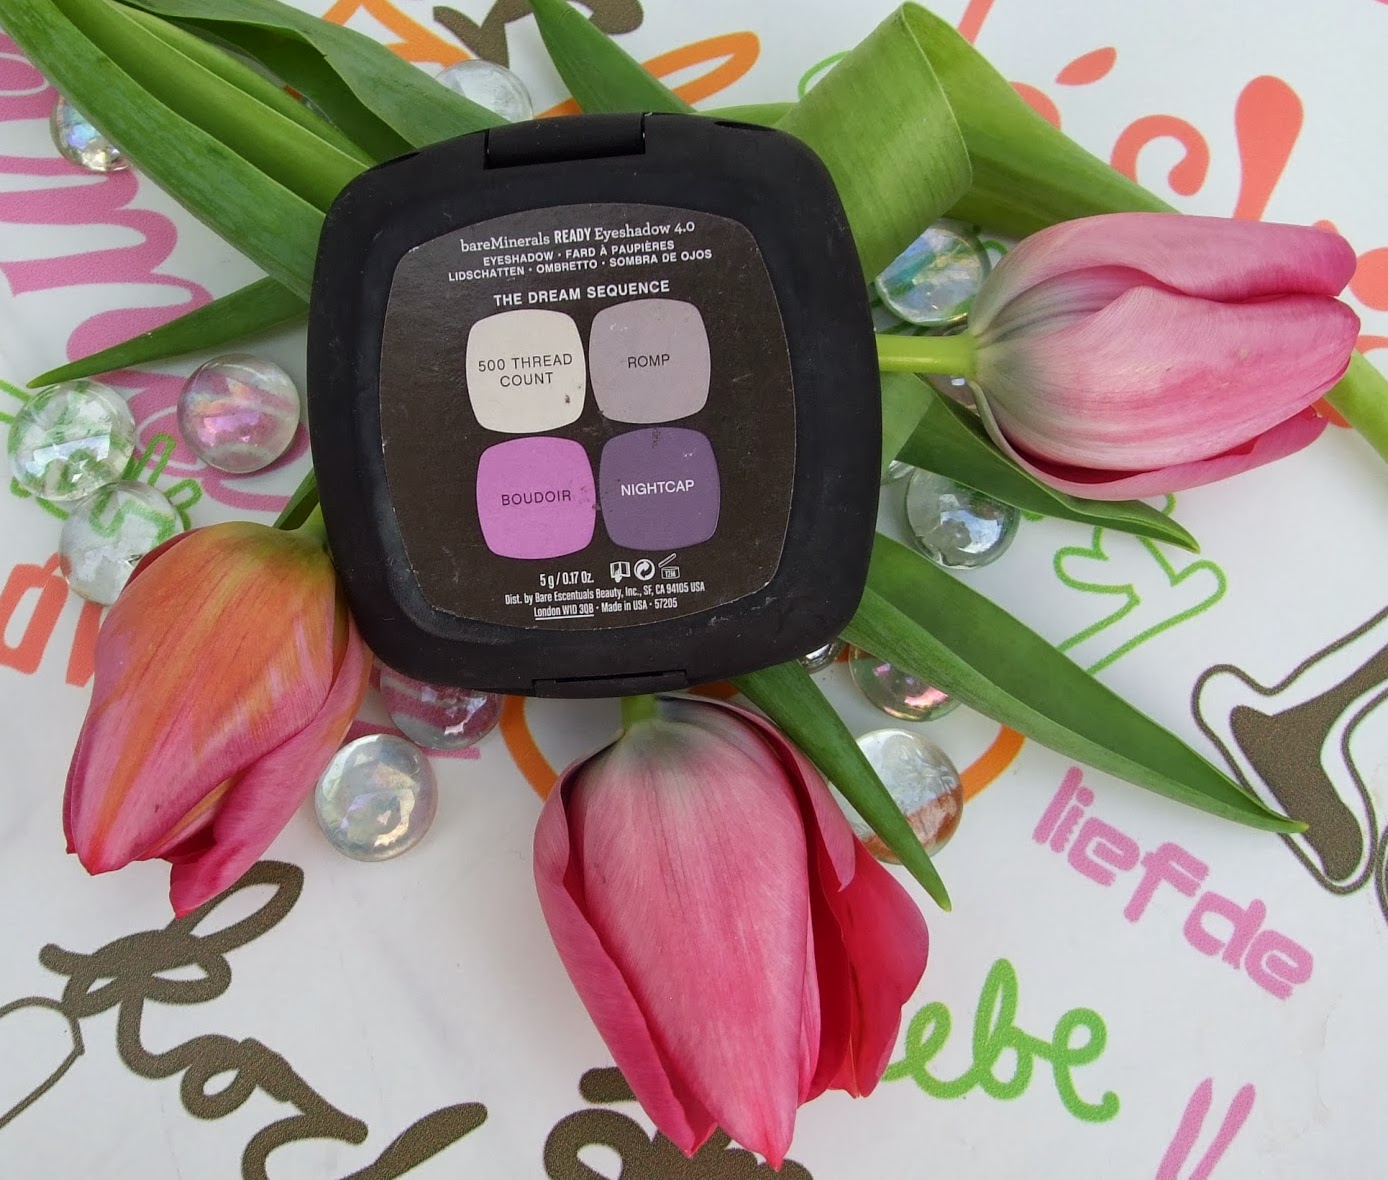 bare minerals Dream sequence eye-shadow quad review purple eye looks